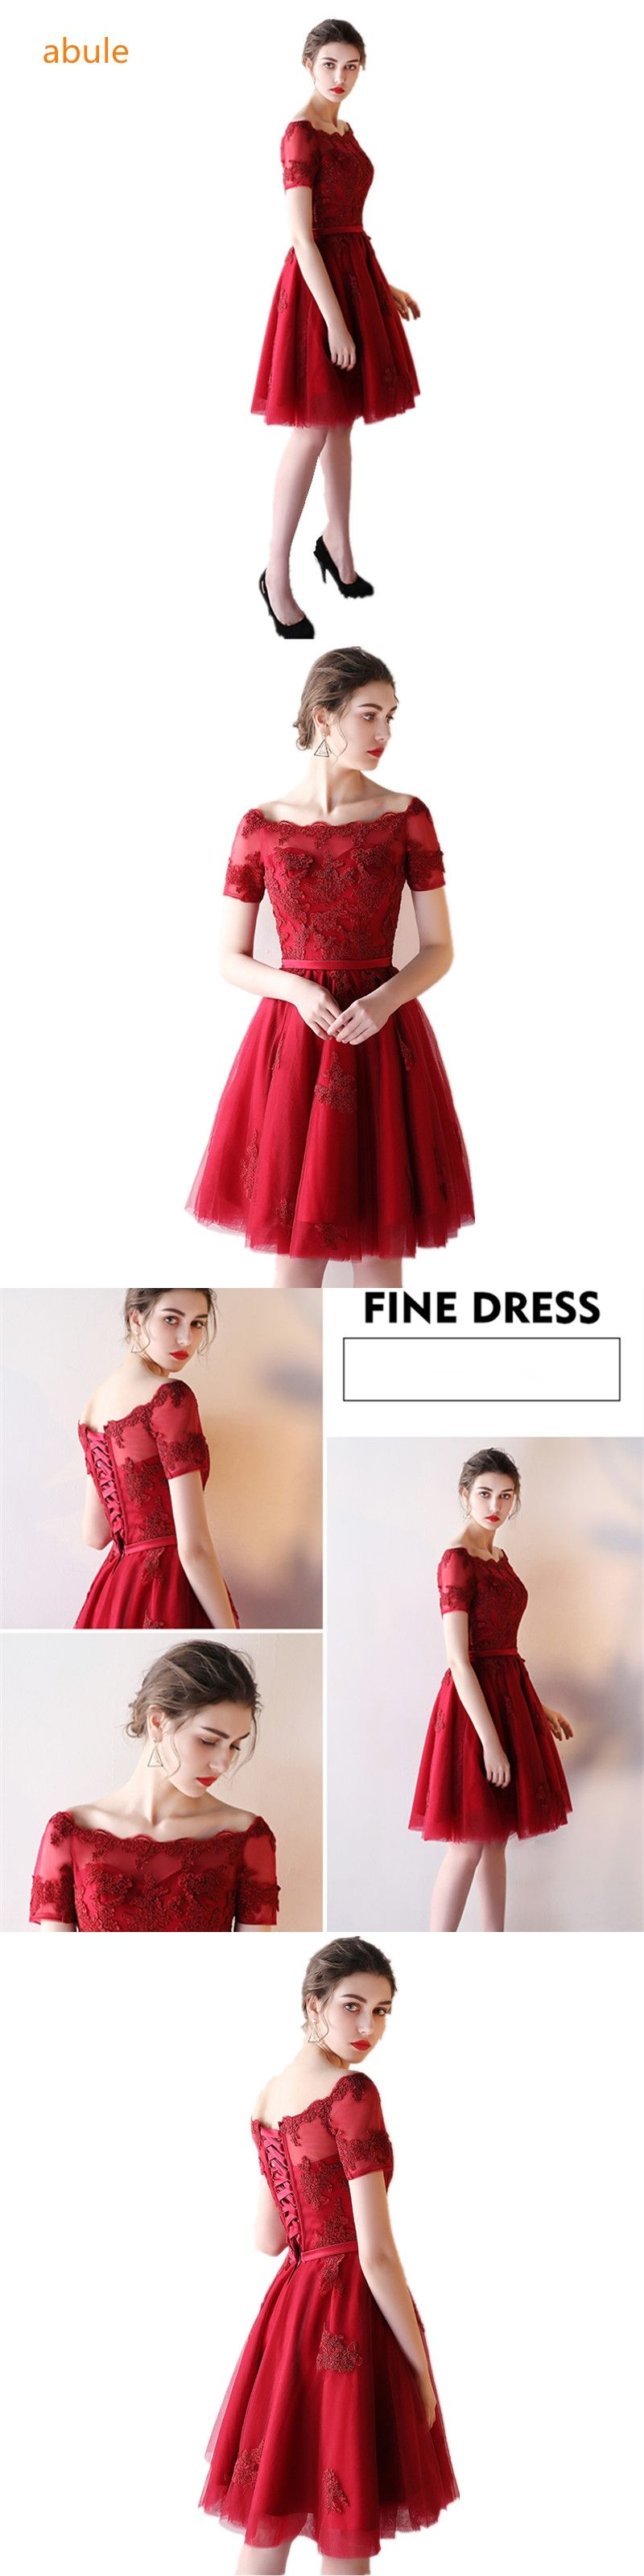 abule Women short Evening Dress 2017 Sexy a-line lace up Red wine Formal  Prom a01eac0184ce